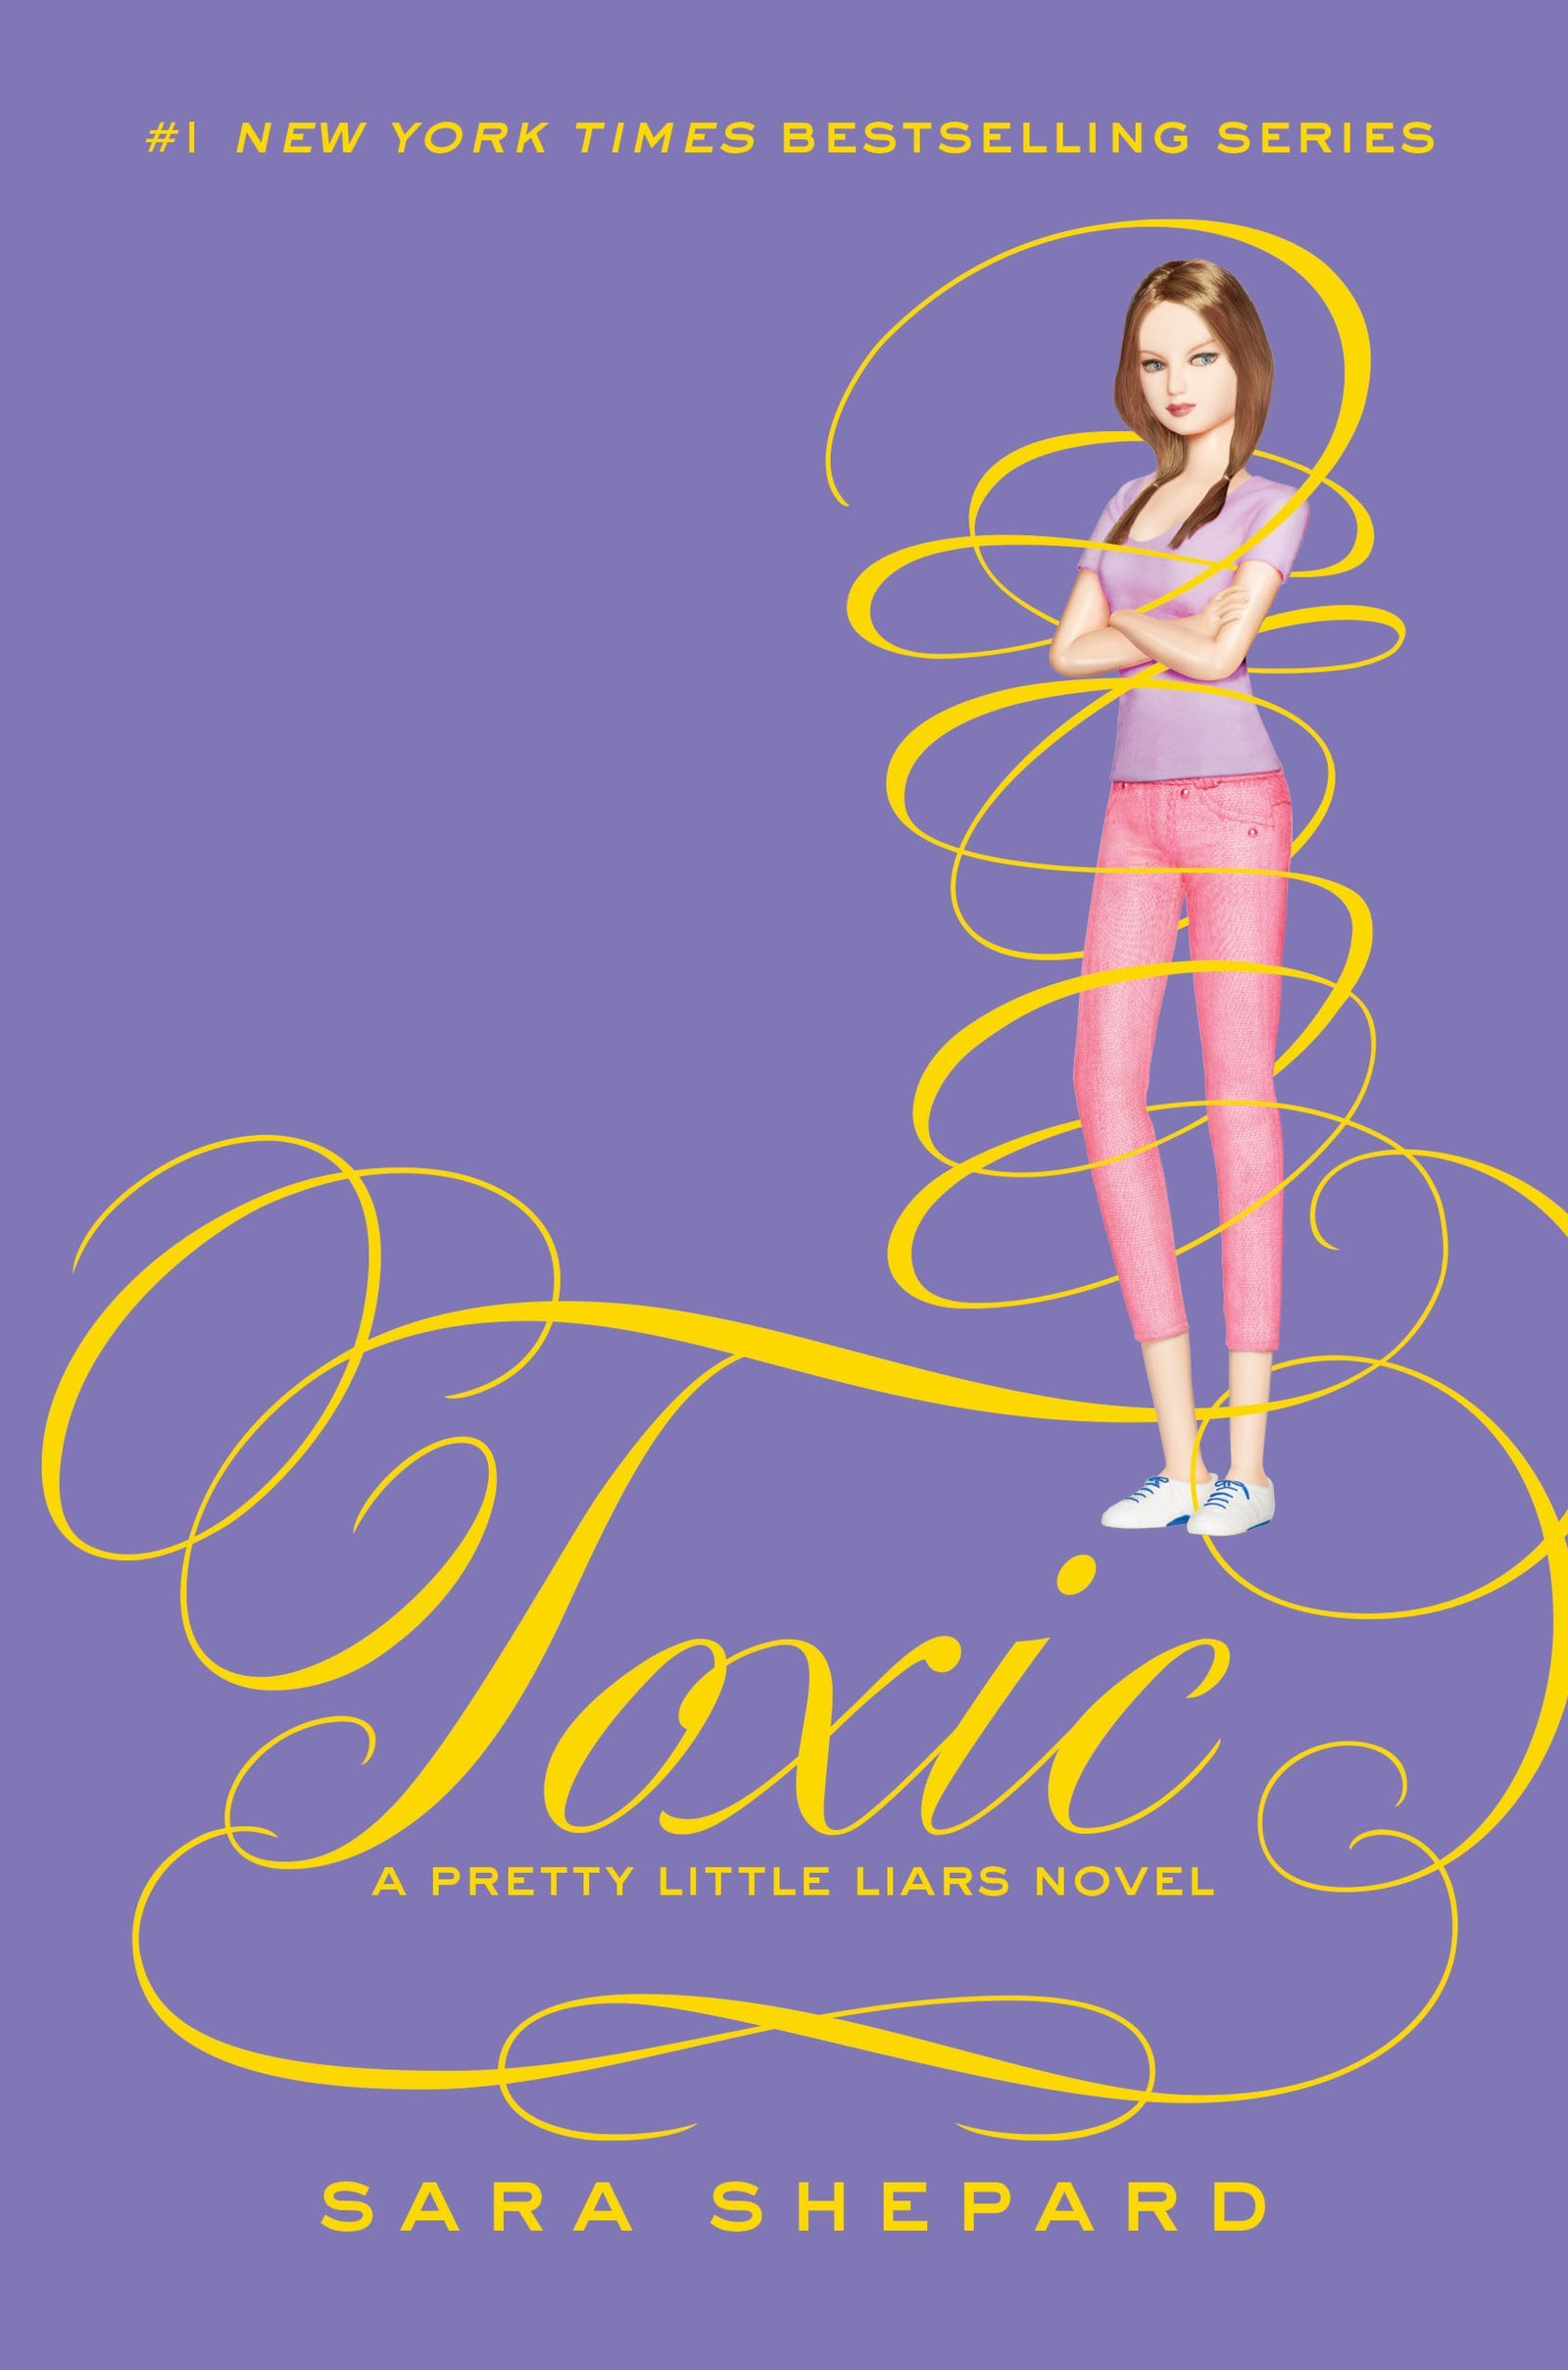 Pretty Book Cover Archive : The book bratz review toxic pll by sara shepard